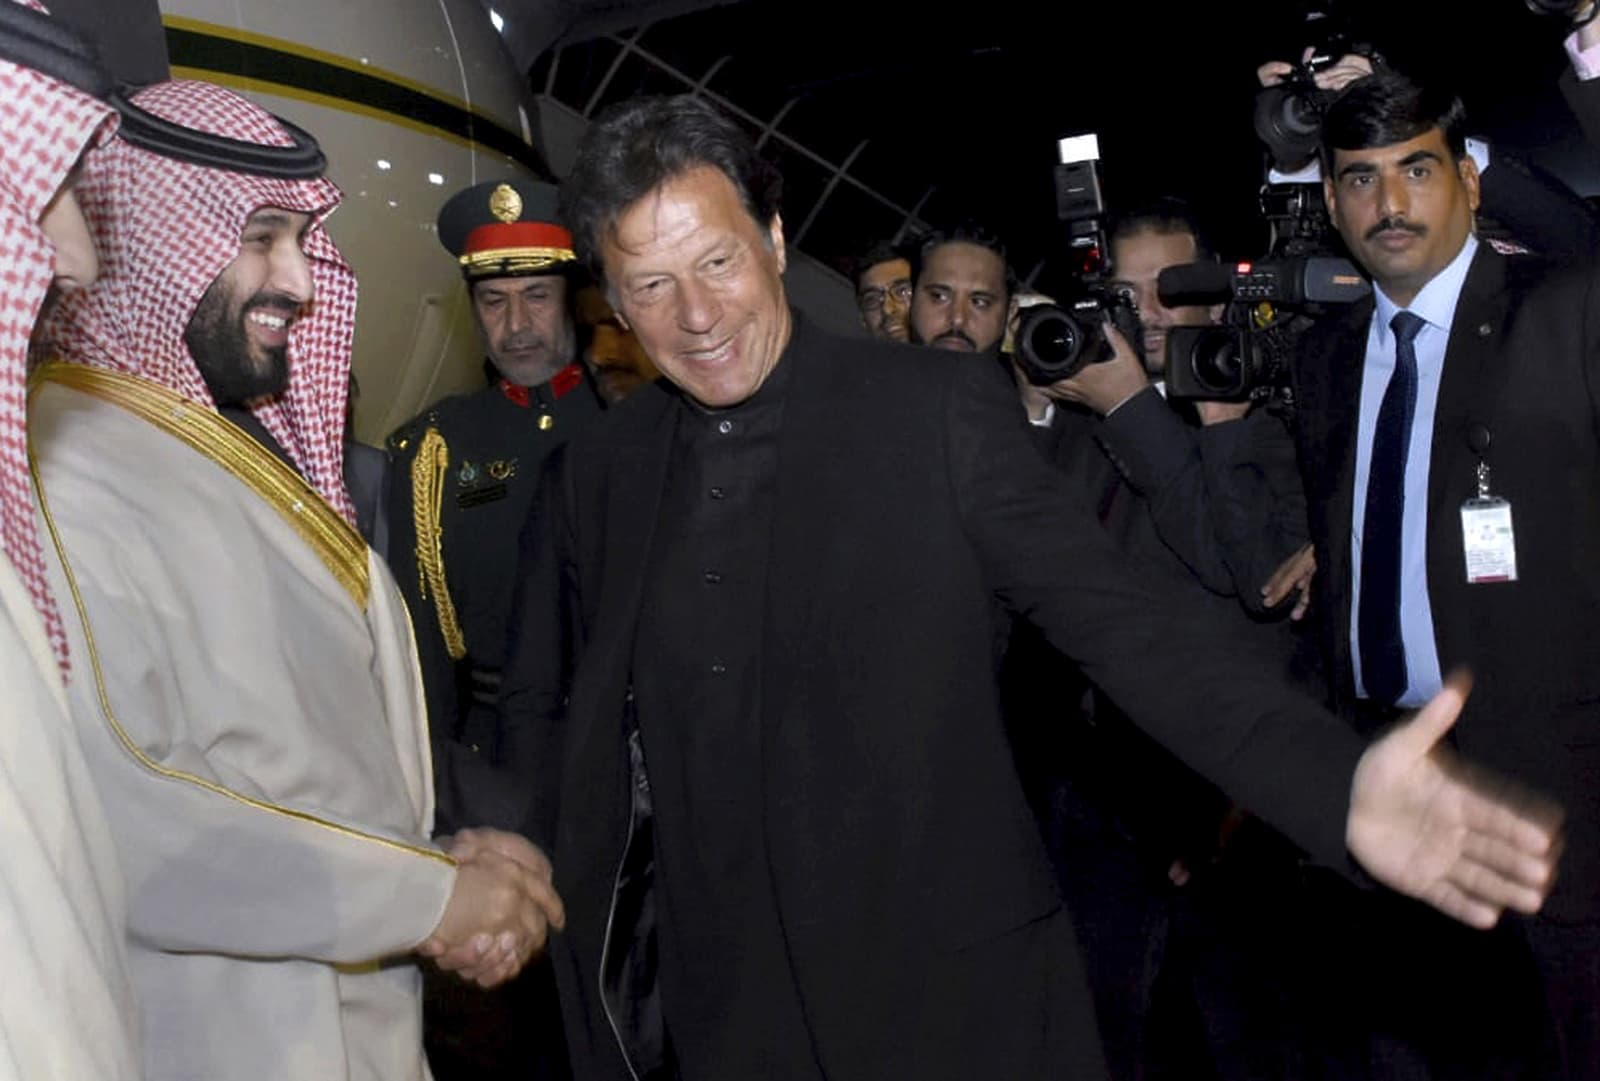 Prime Minister Imran Khan greets Saudi Arabia's Crown Prince Mohammed bin Salman upon his arrival at Nur Khan Airbase in Rawalpindi on Sunday. — AP